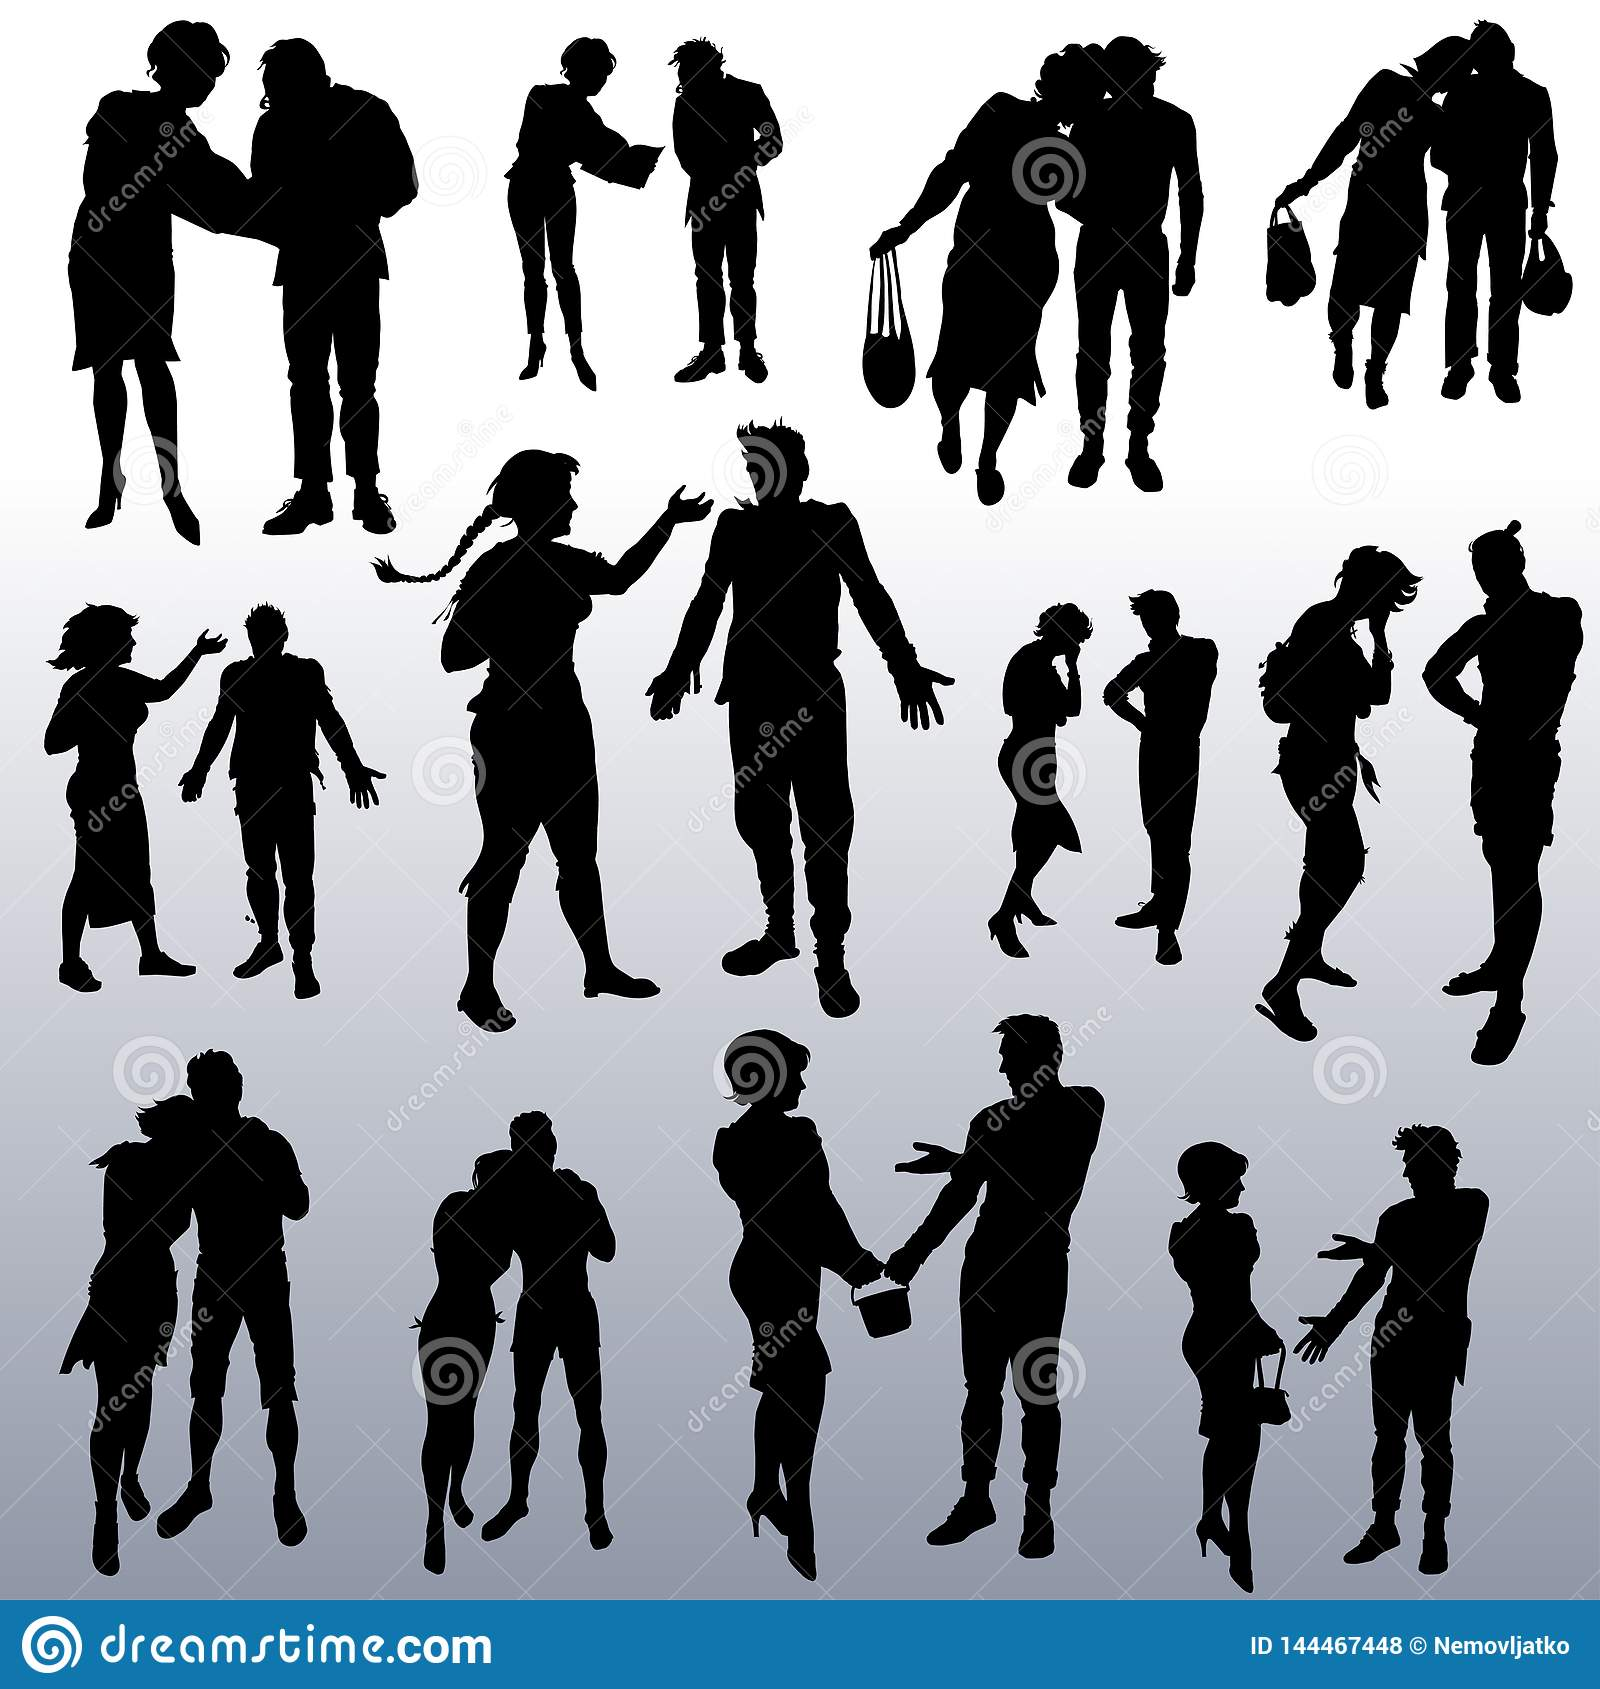 Vector silhouettes of people of different ages